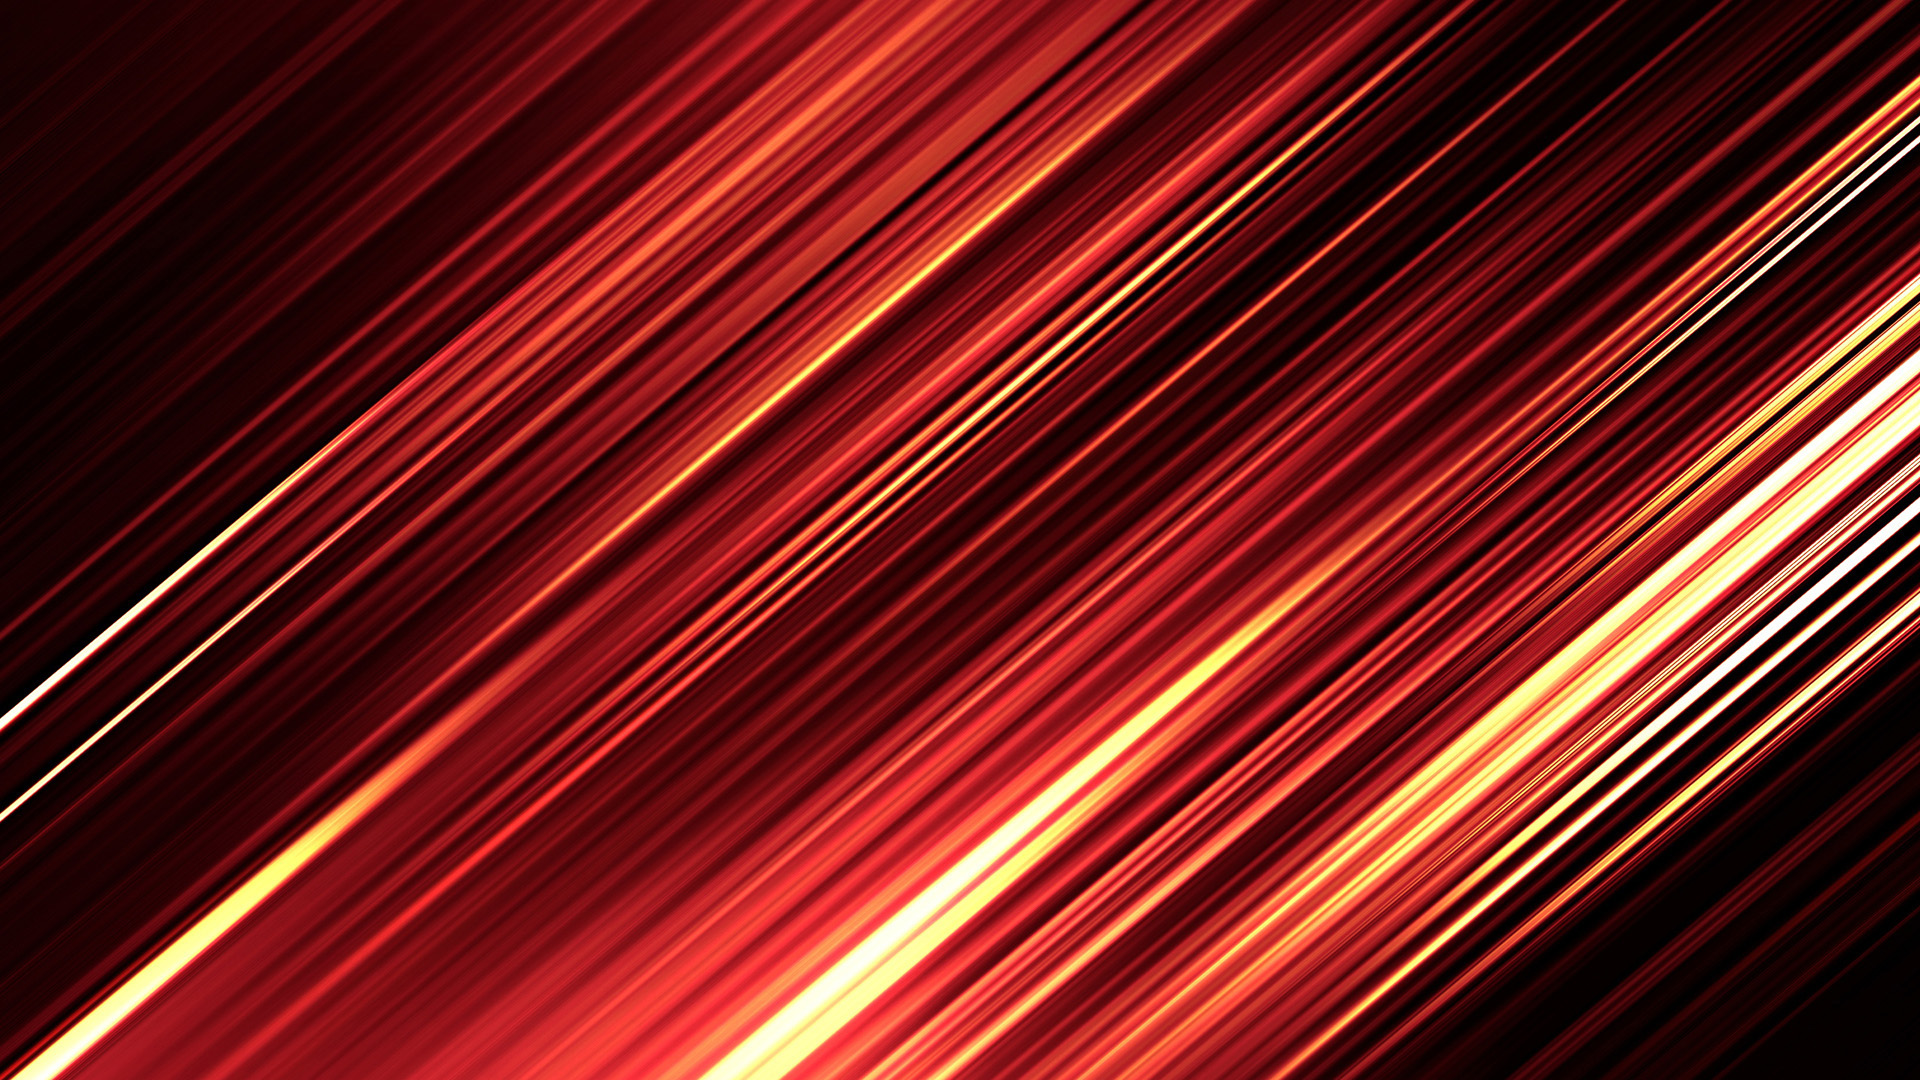 Red metal wallpaper wallpapersafari for Metallic wallpaper